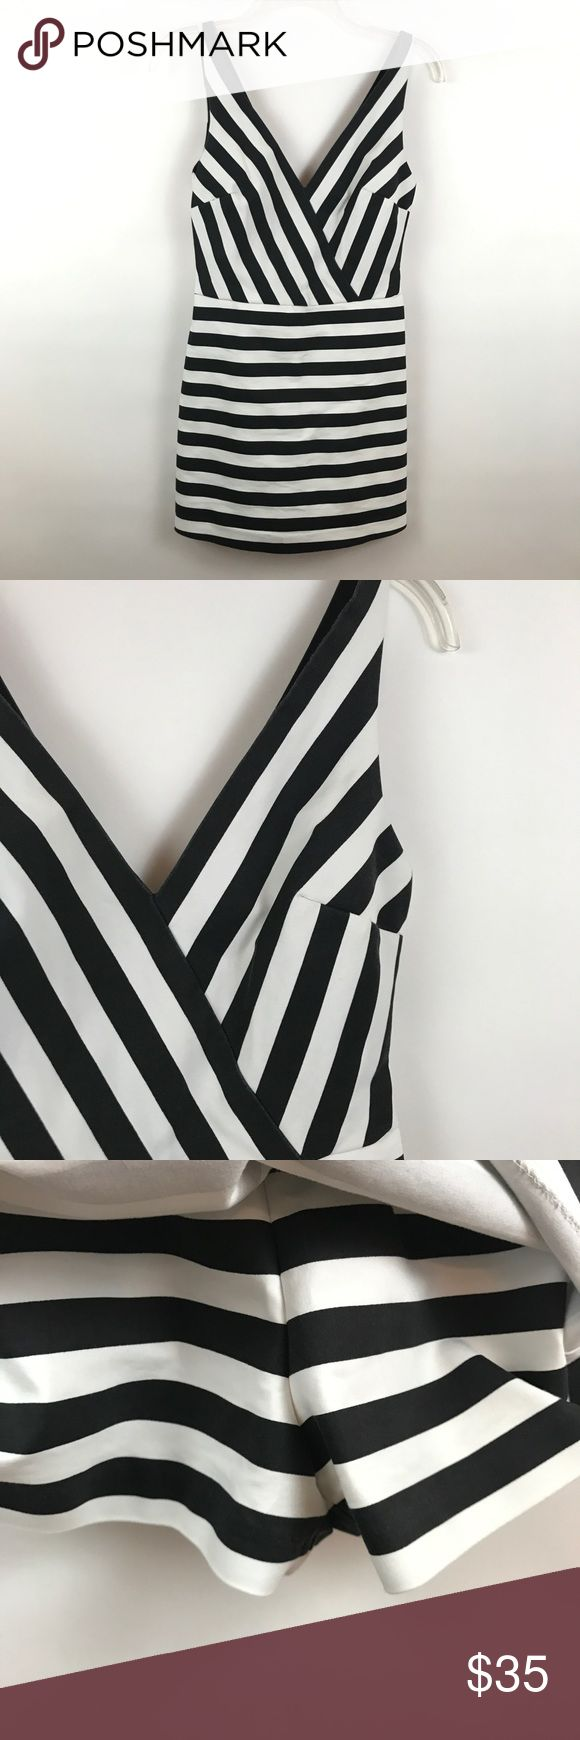 "ZARA | Black White Stripe Skirted Romper B3 Condition: Excellent pre owned condition Measurements (laying flat): 14.5"" pit to pit 29"" length 2"" inseam  Item location: bin 3 Zara Pants Jumpsuits & Rompers"